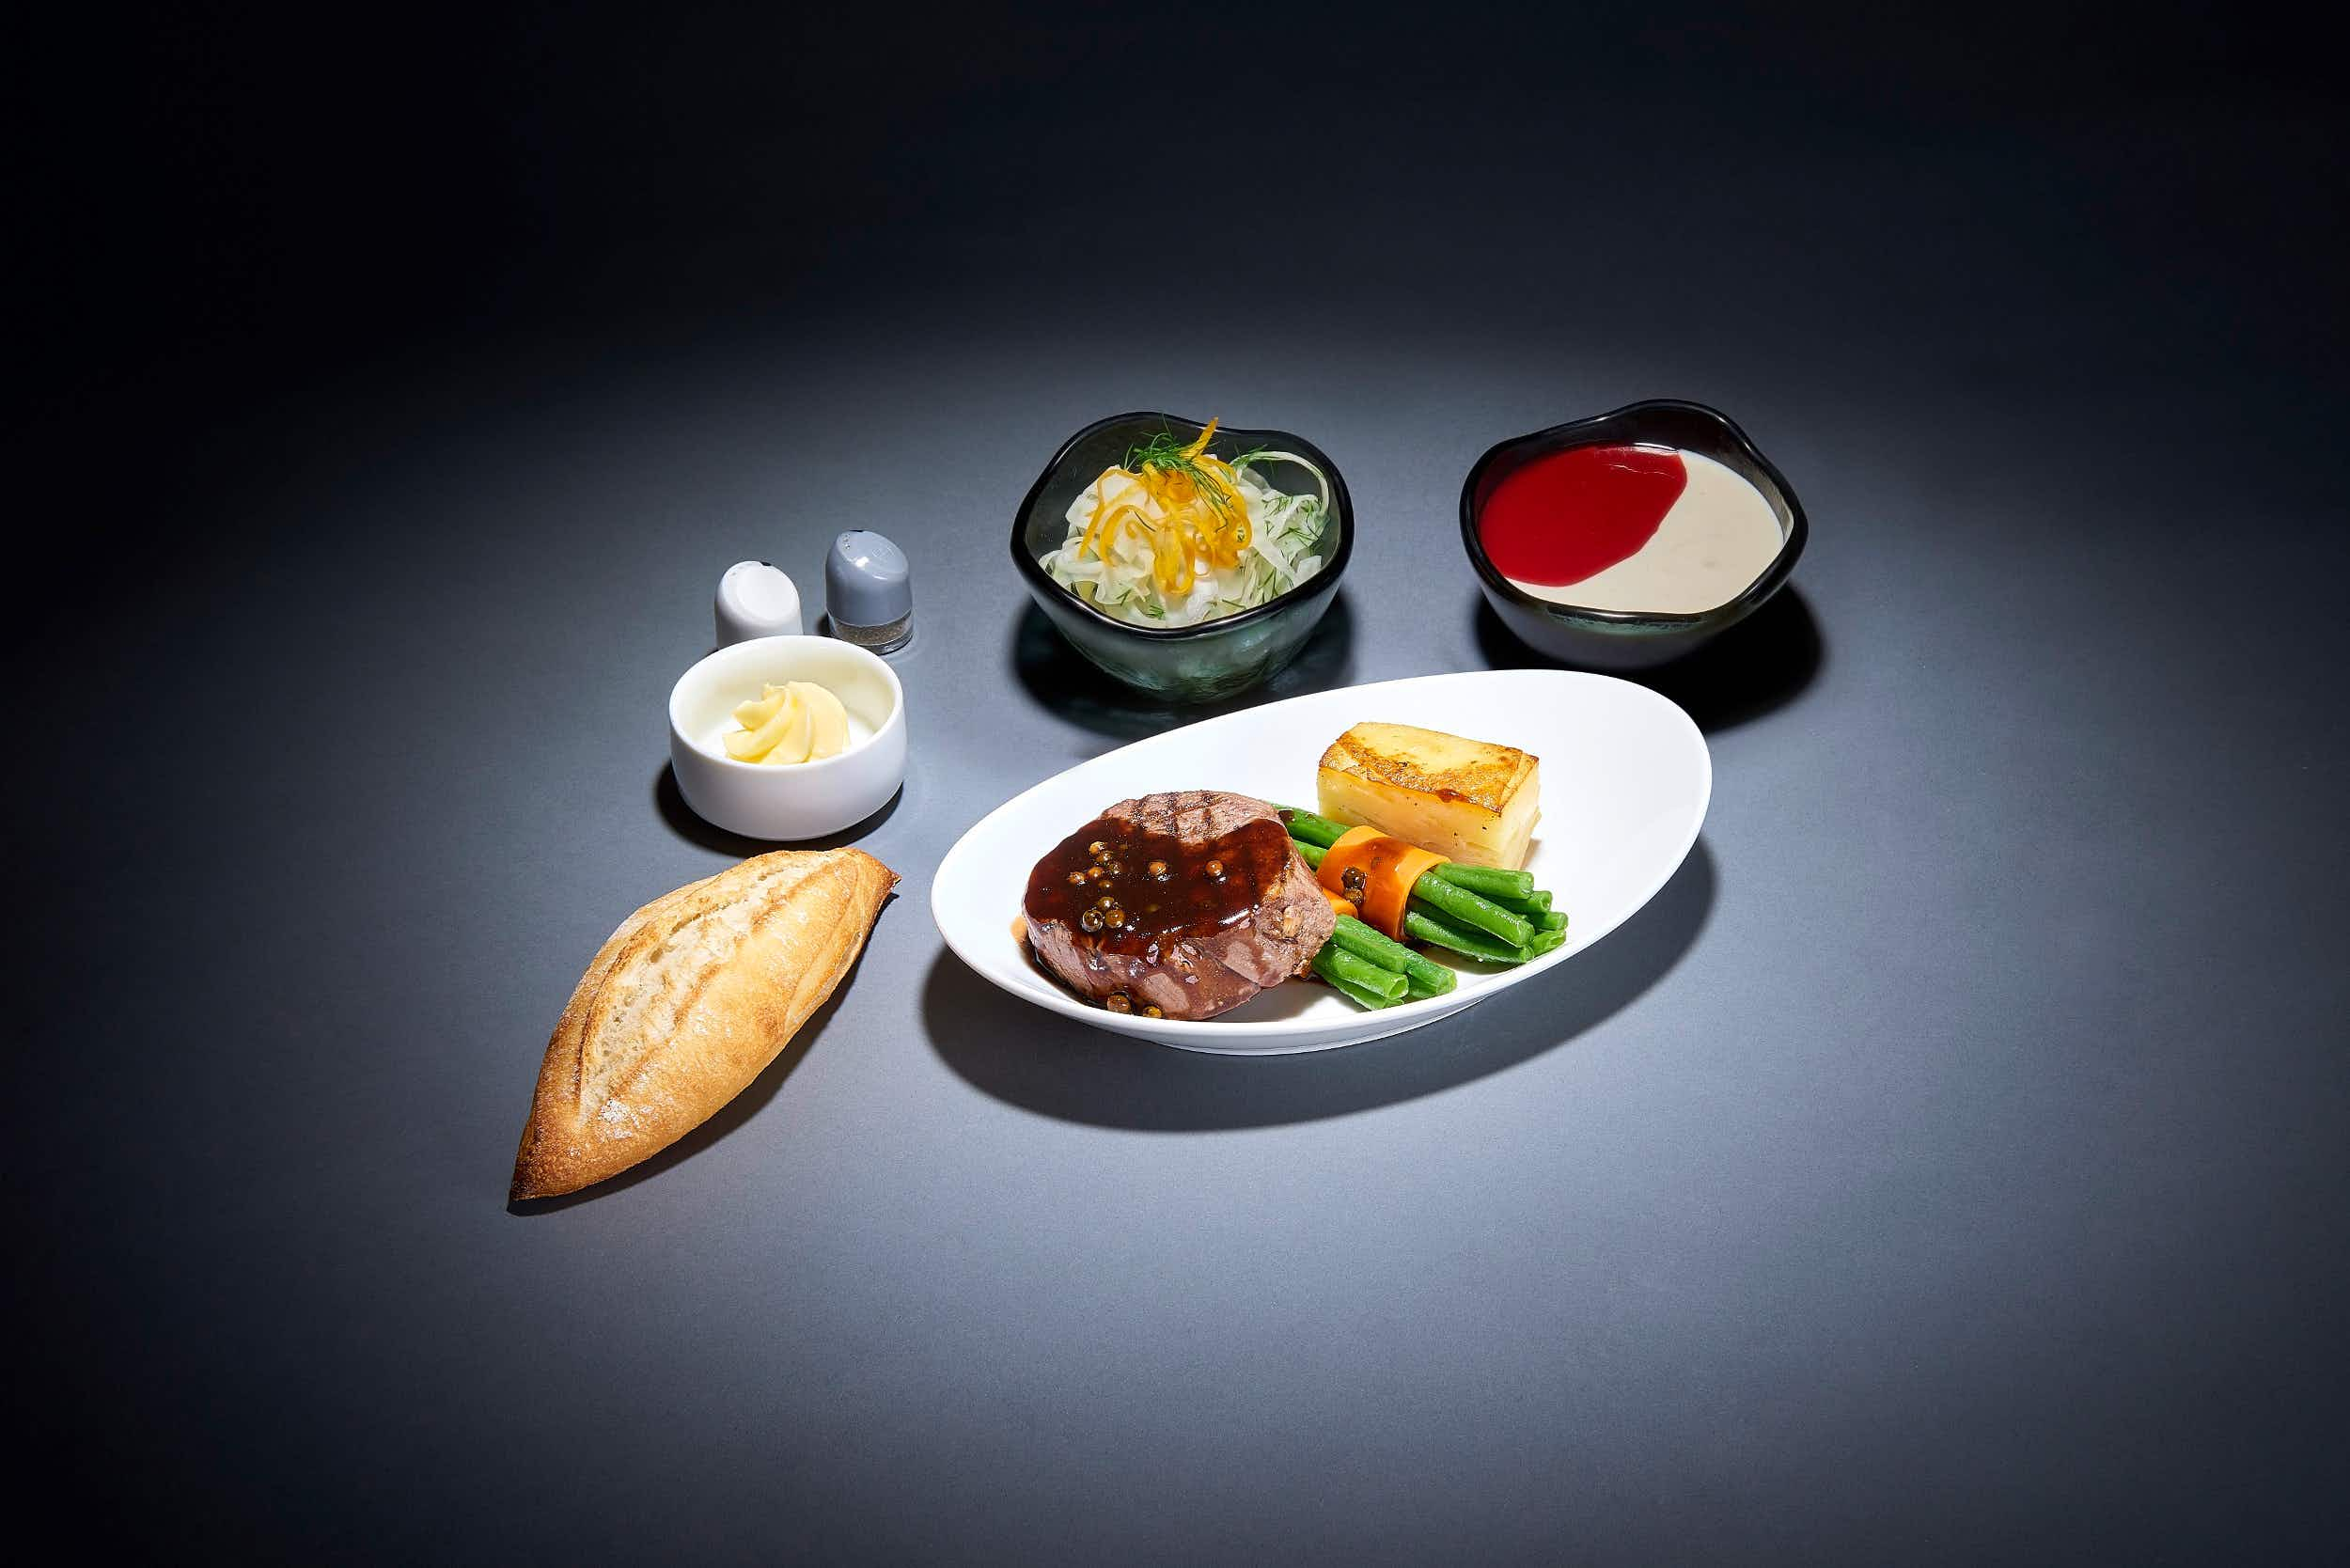 Steak or shrimp? Lufthansa's new fine dining menus are a foodie's dream come true